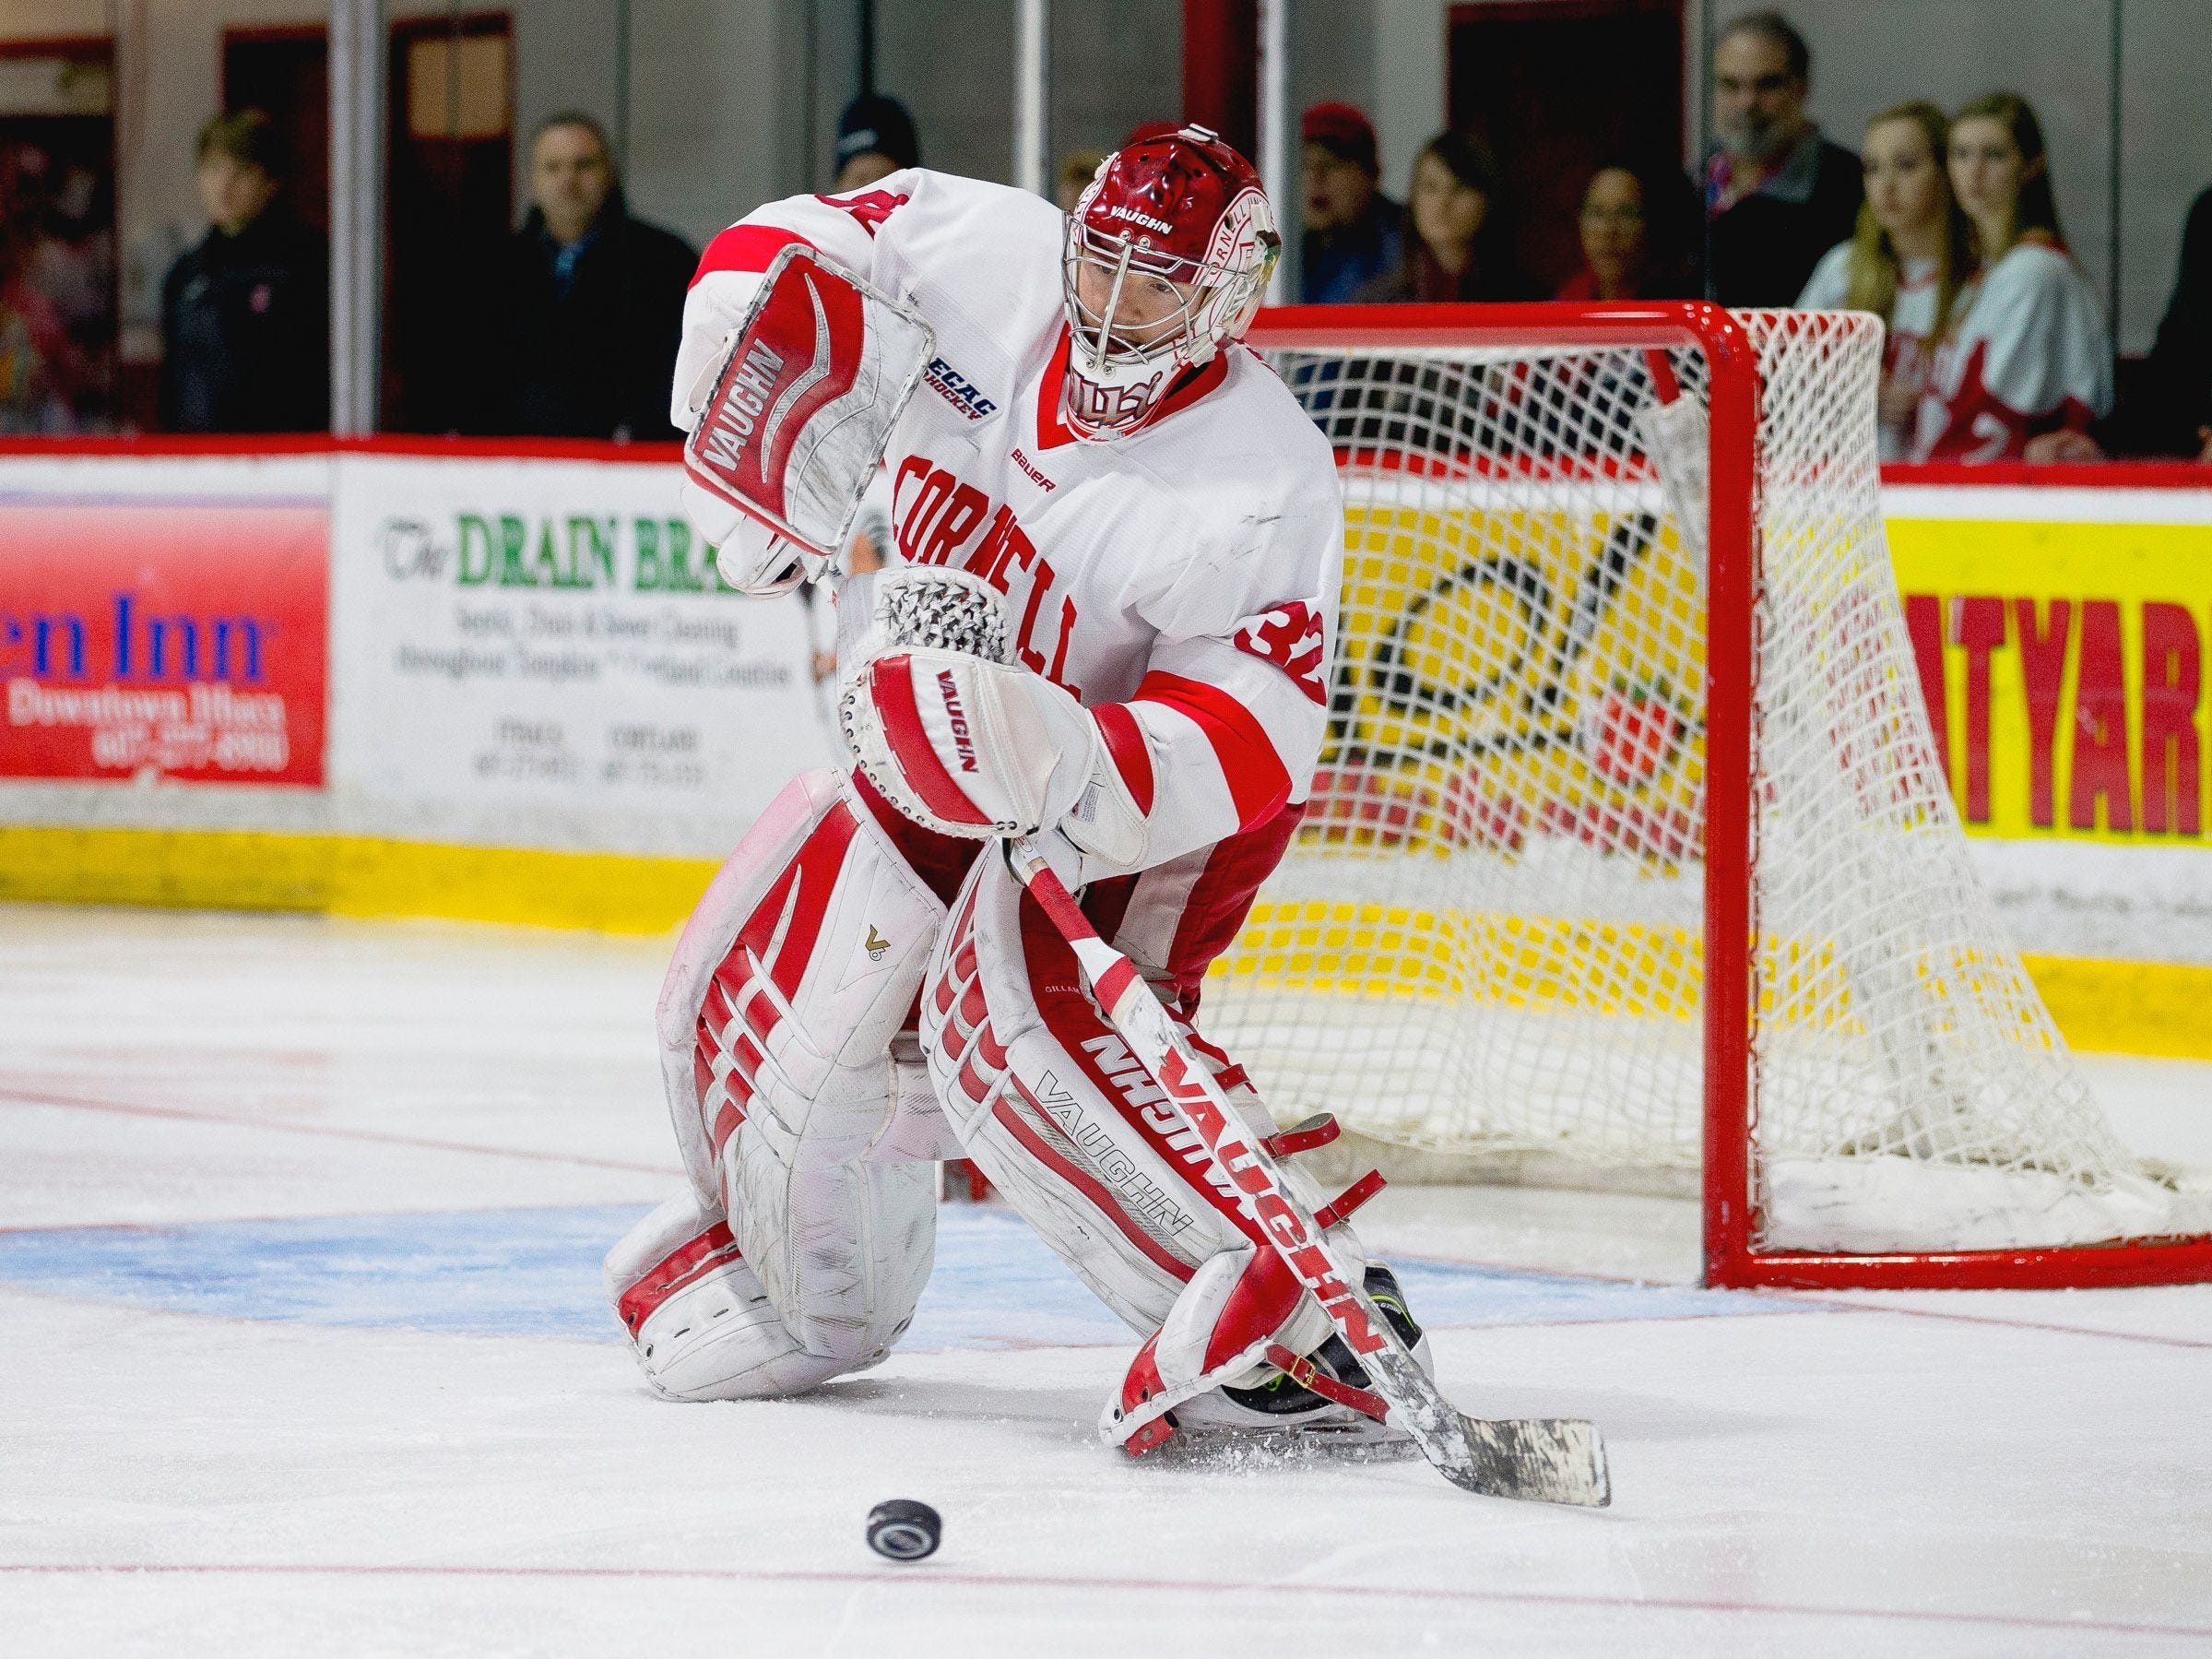 2017: Cornell senior goalie Mitch Gillam has a 21-7-5 record this season with a 2.17 goals-against average, .921 save percentage and three shutouts.